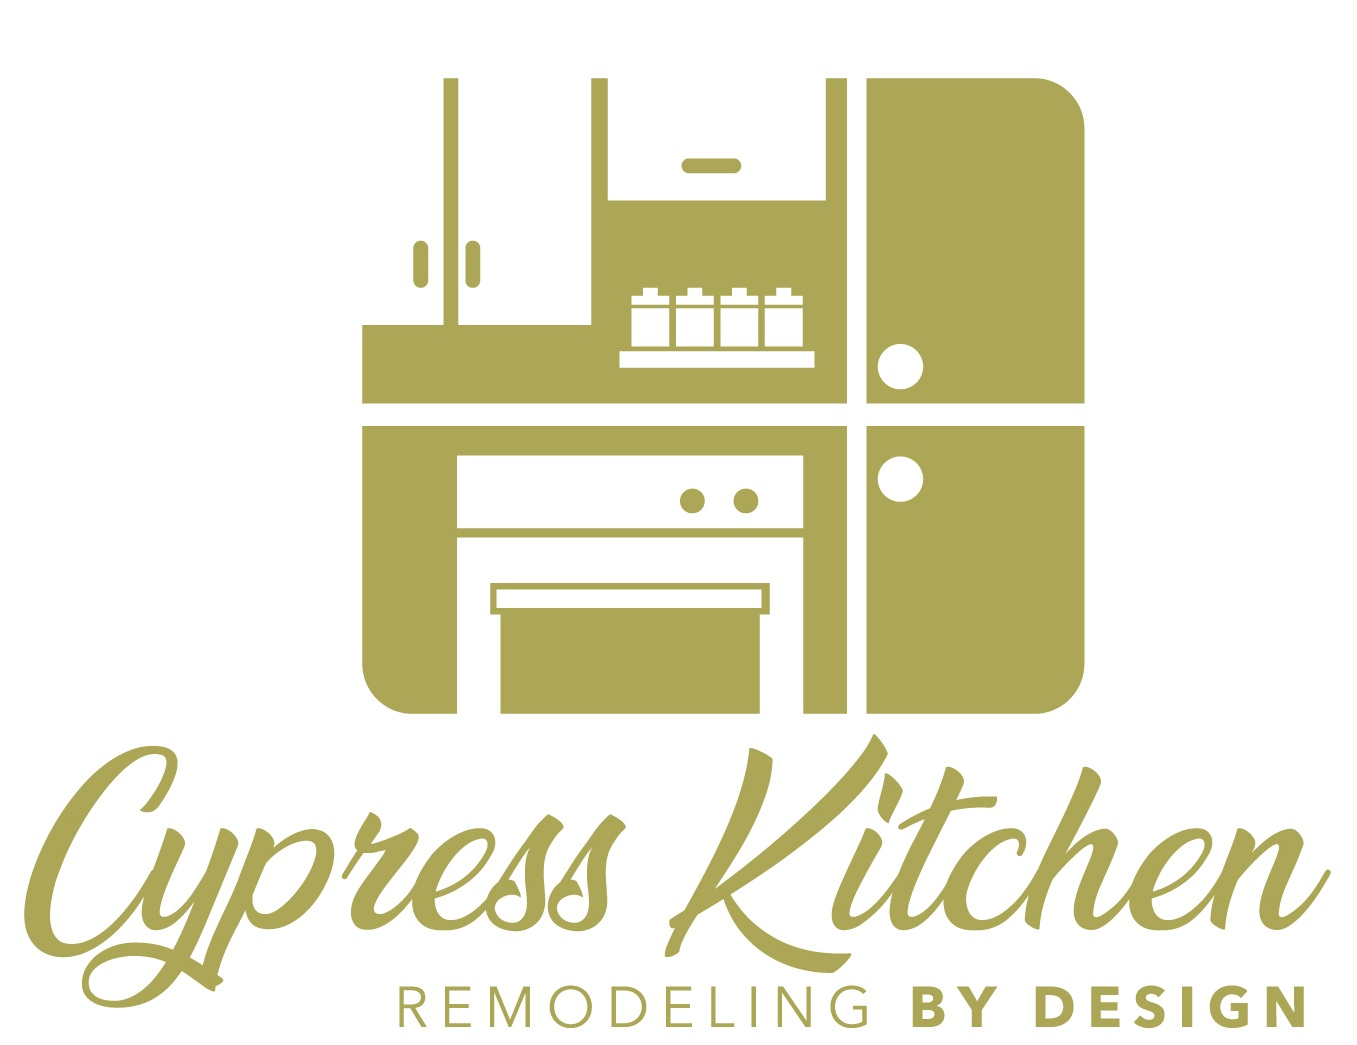 Cypress Kitchen Remodeling By Design